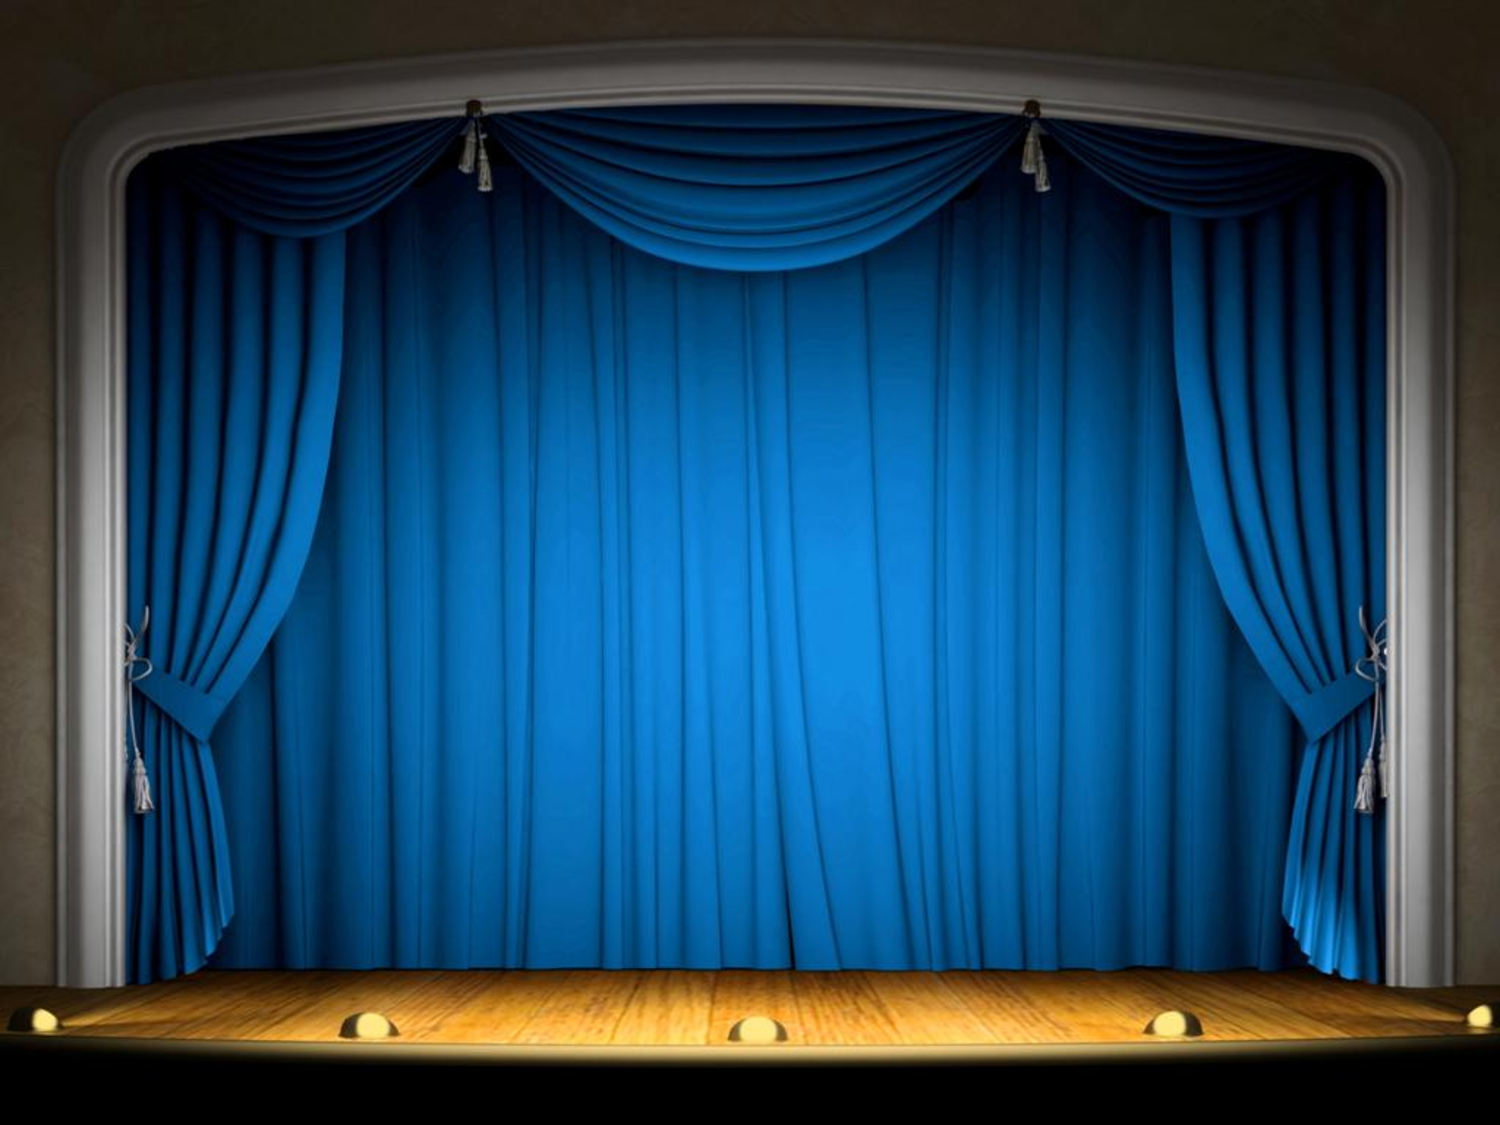 powerpoint slides | FREE POWERPOINT TEMPLATE - STAGE BACKGROUND ... for Red Curtain Background Powerpoint  110zmd